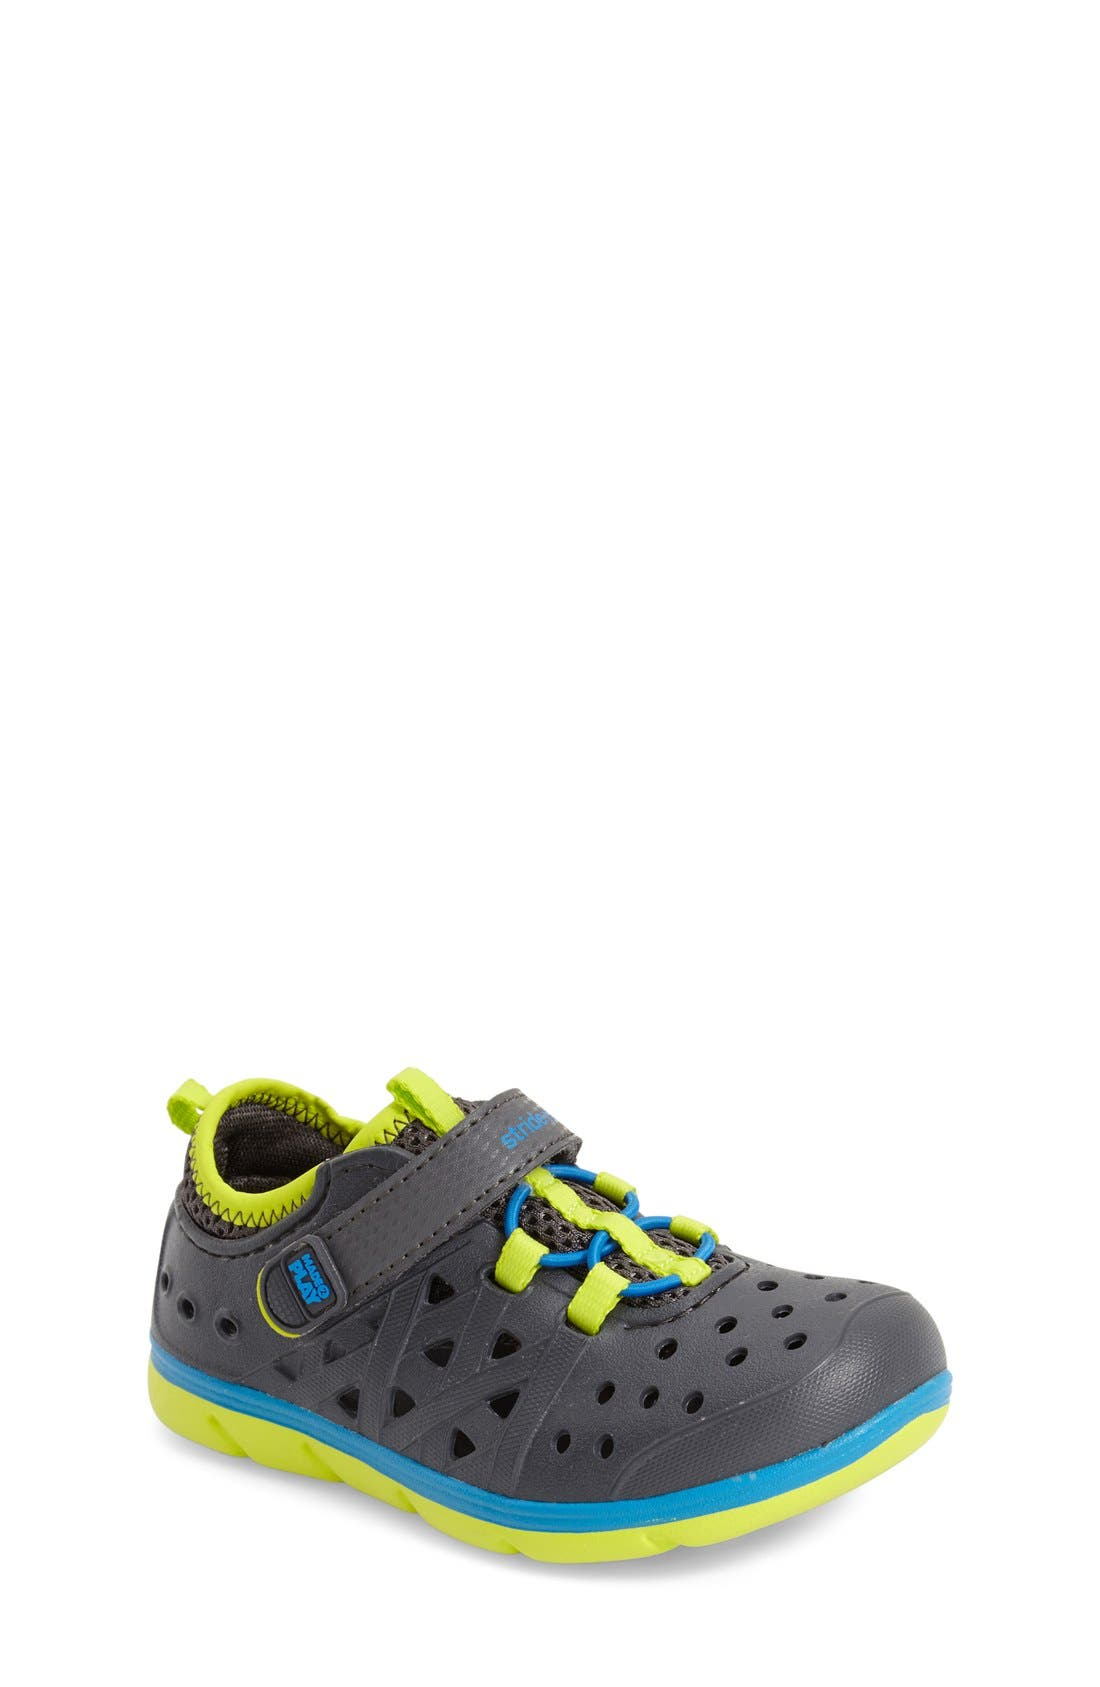 Main Image - Stride Rite 'Made2Play® Phibian' Sneaker (Baby, Walker, Toddler & Little Kid)